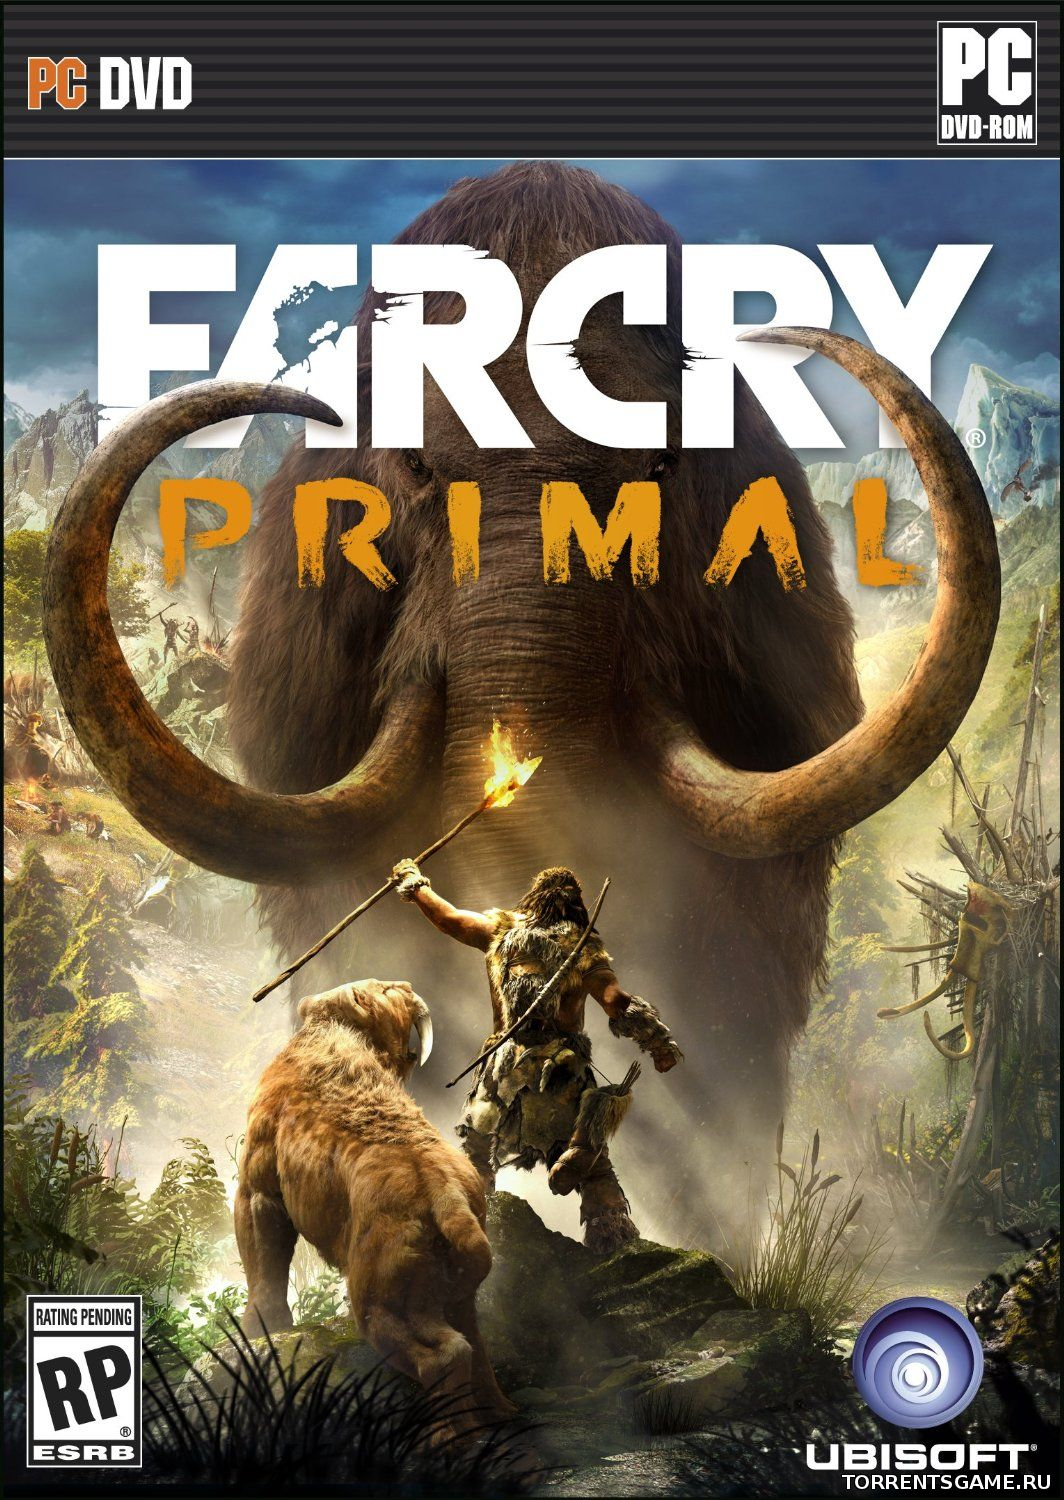 http://torrentsgame.ru/load/games/action/far_cry_primal/2-1-0-60